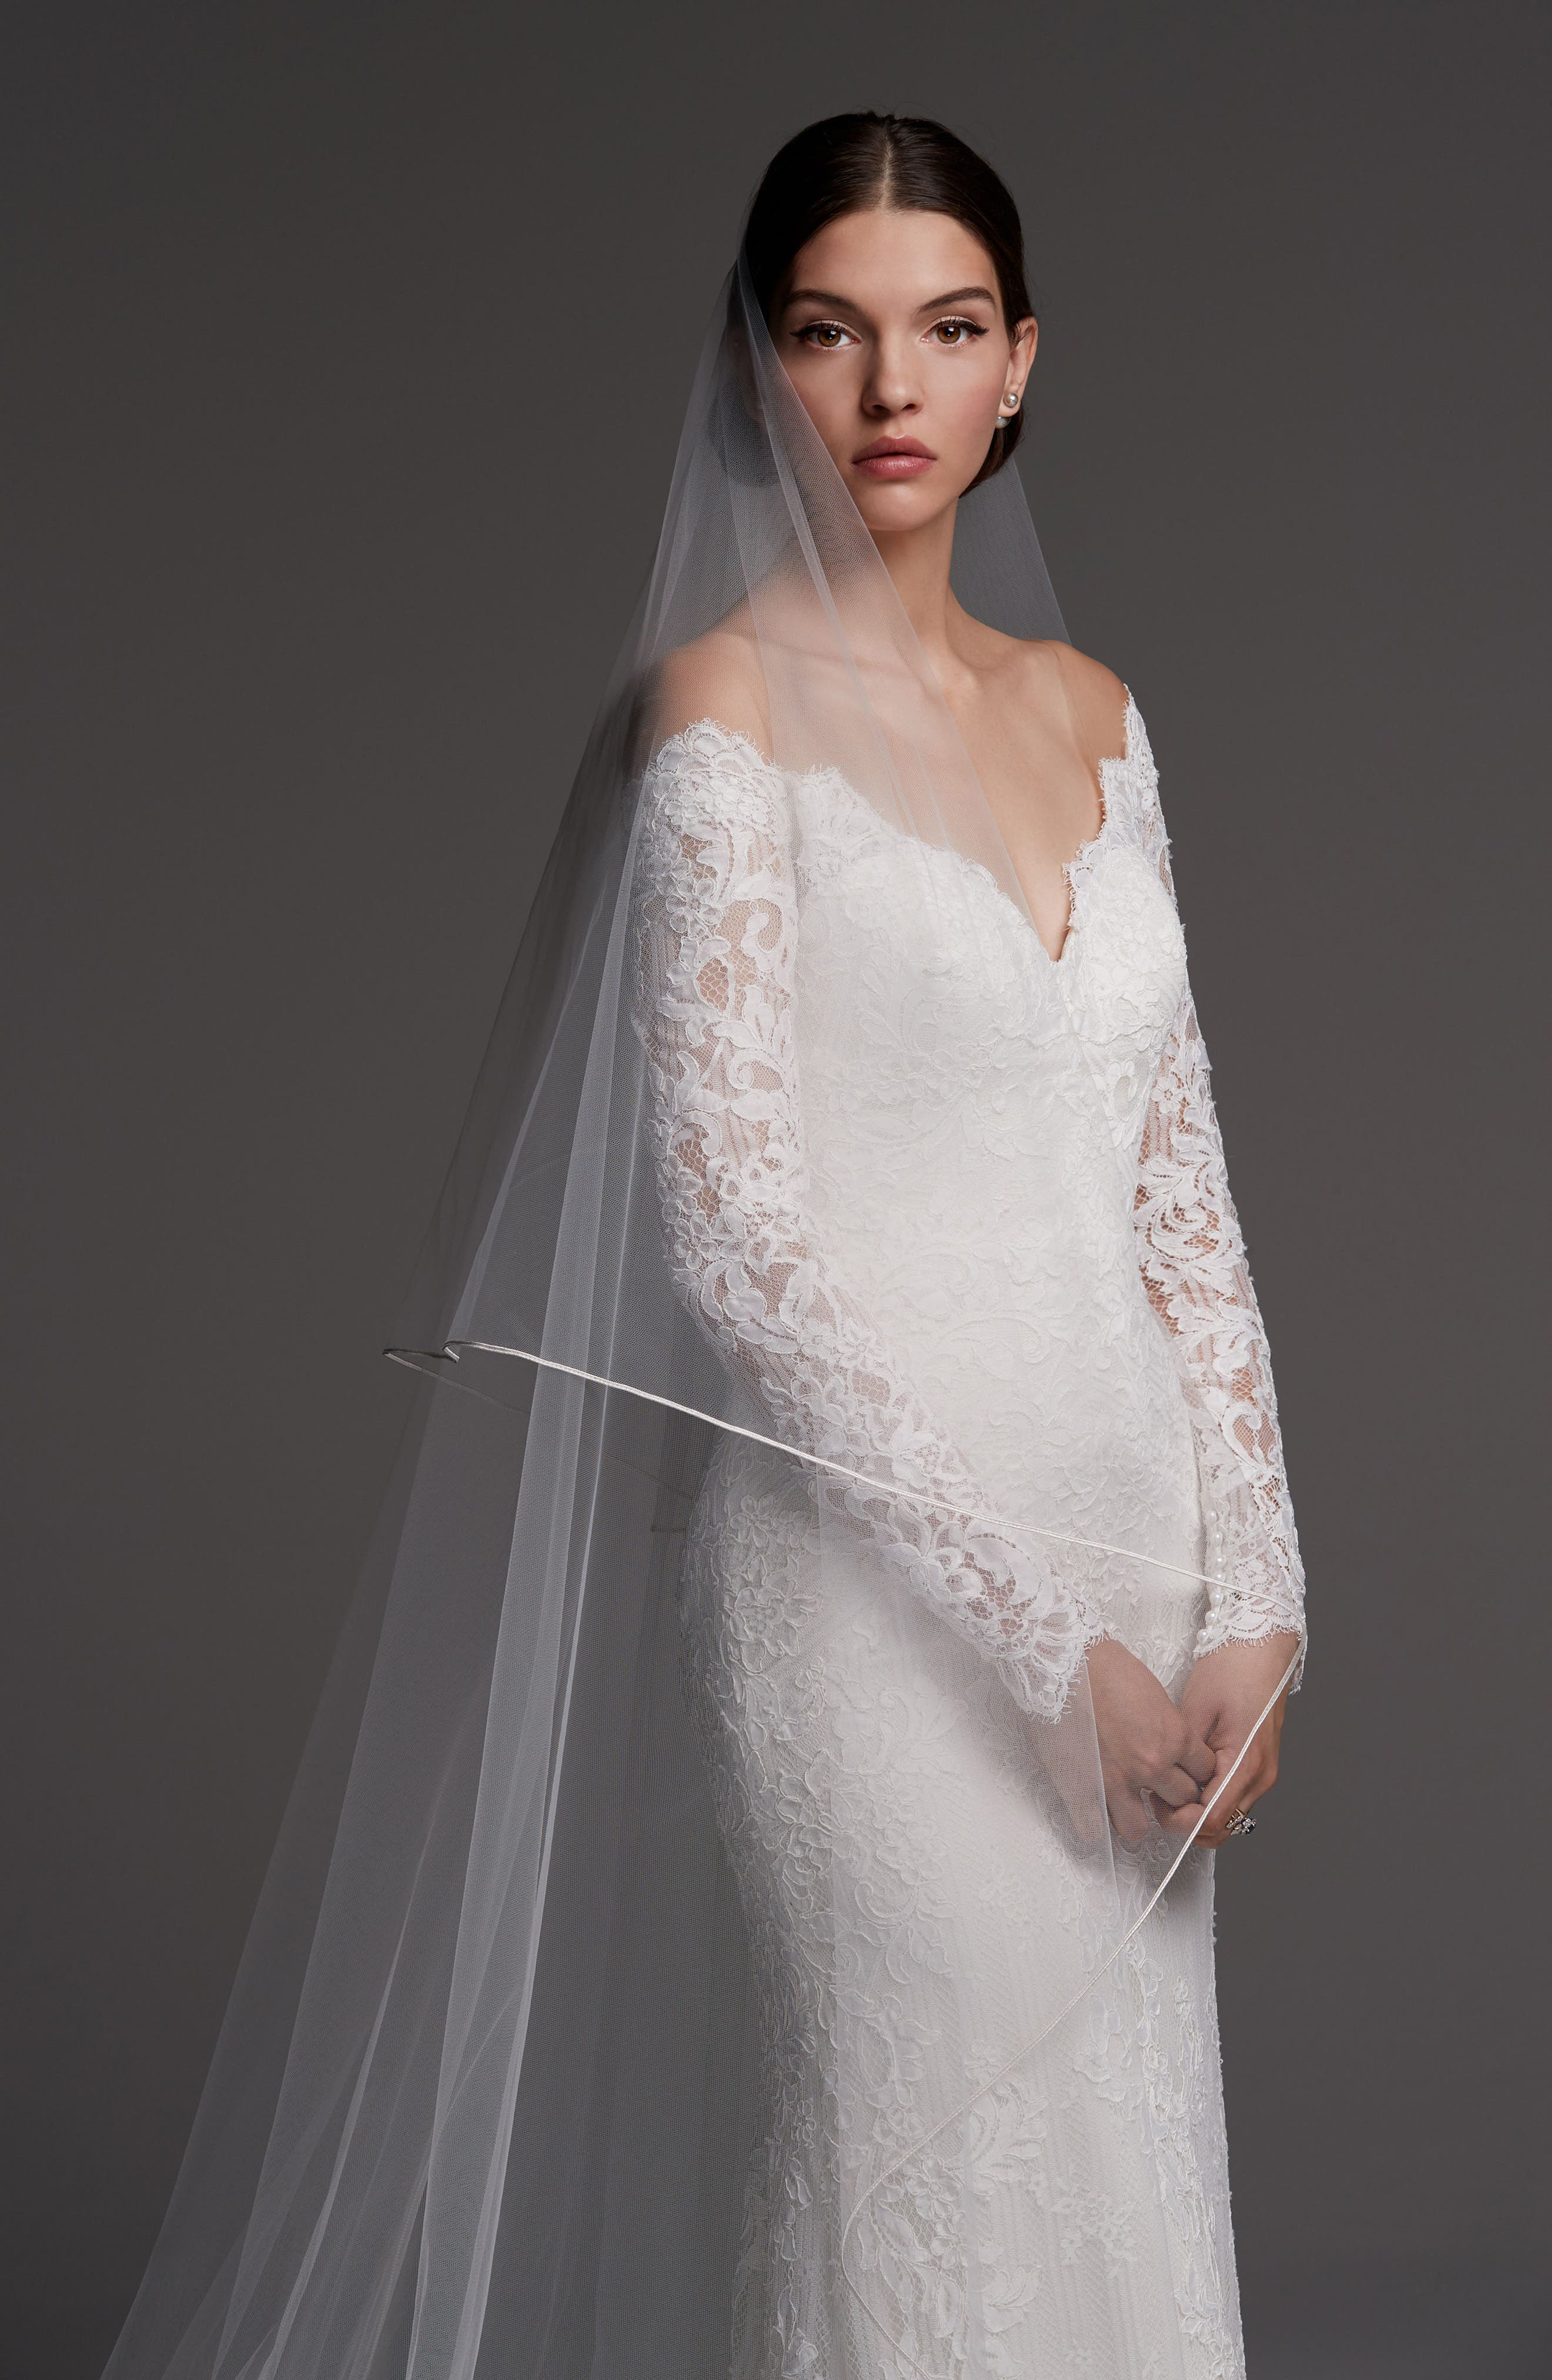 Visconti Long Sleeve Lace Gown,                             Alternate thumbnail 3, color,                             IVORY/ OYSTER